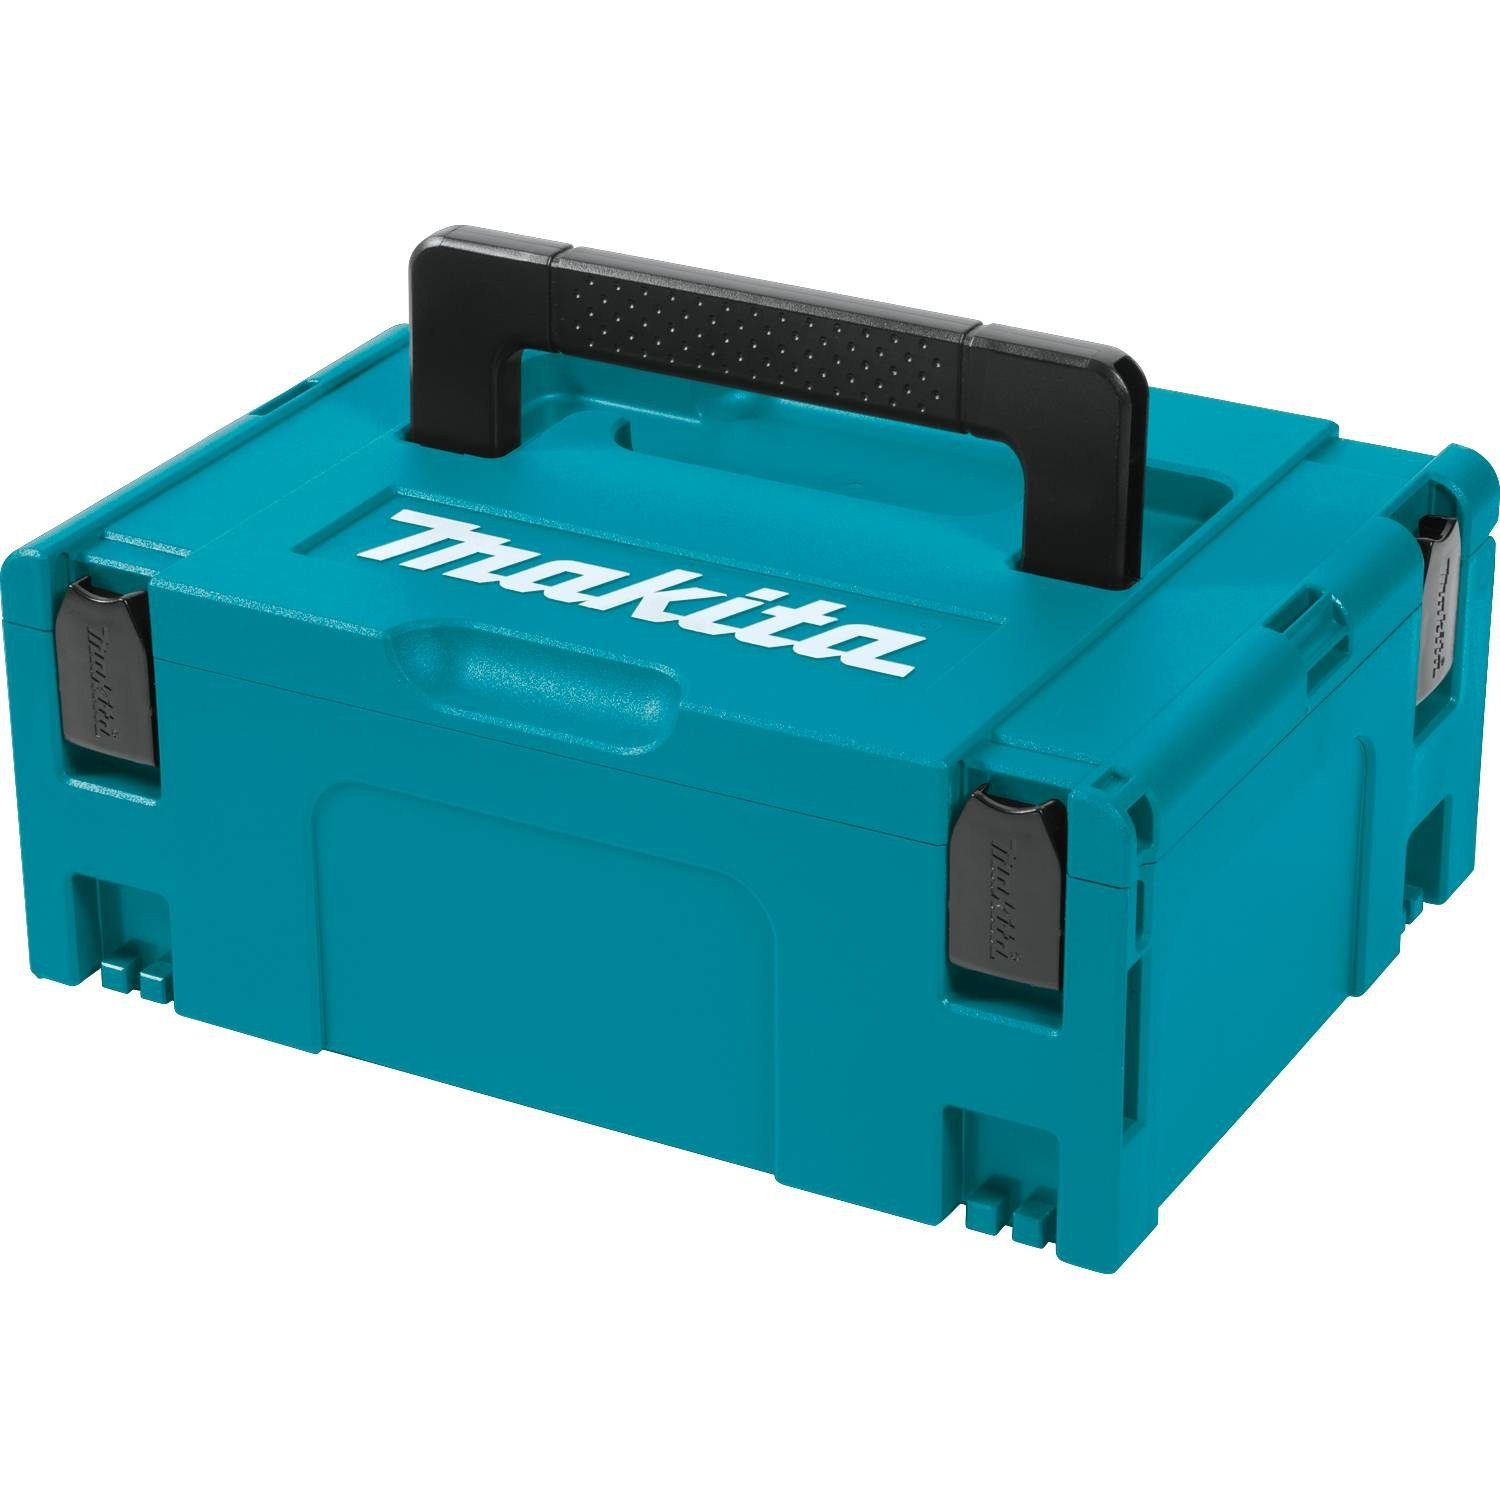 Makita 197211-7 Medium Interlocking Case, 6-1/2'' x 15-1/2'' x 11-5/8'' by Makita